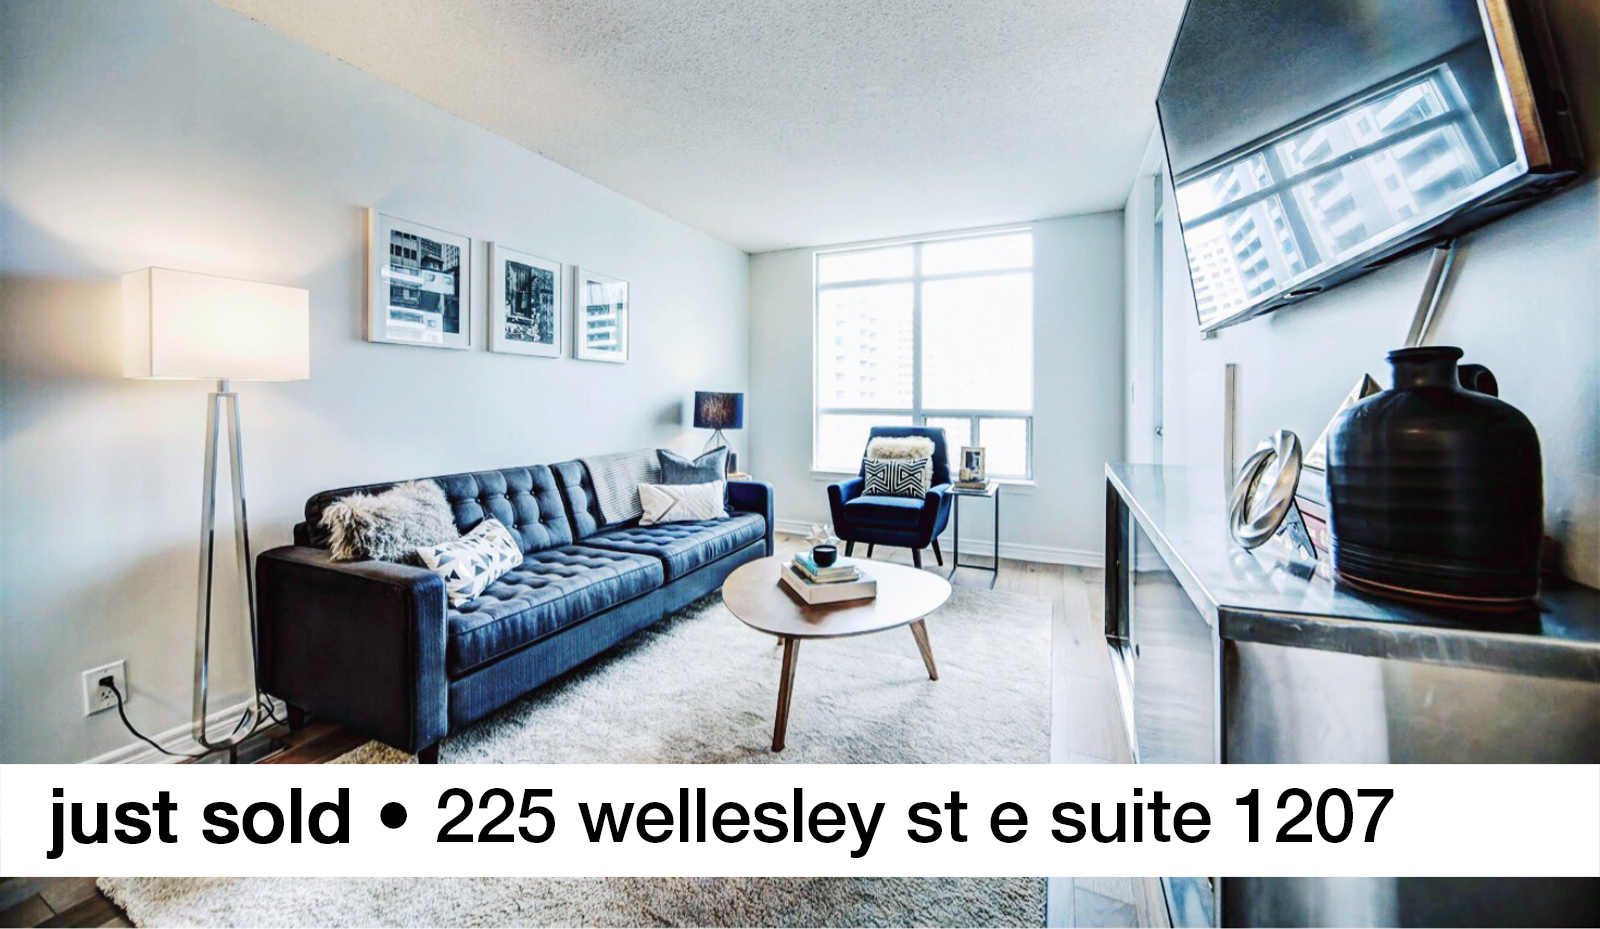 just sold 225 wellesley street east suite 1207 toronto cabbagetown